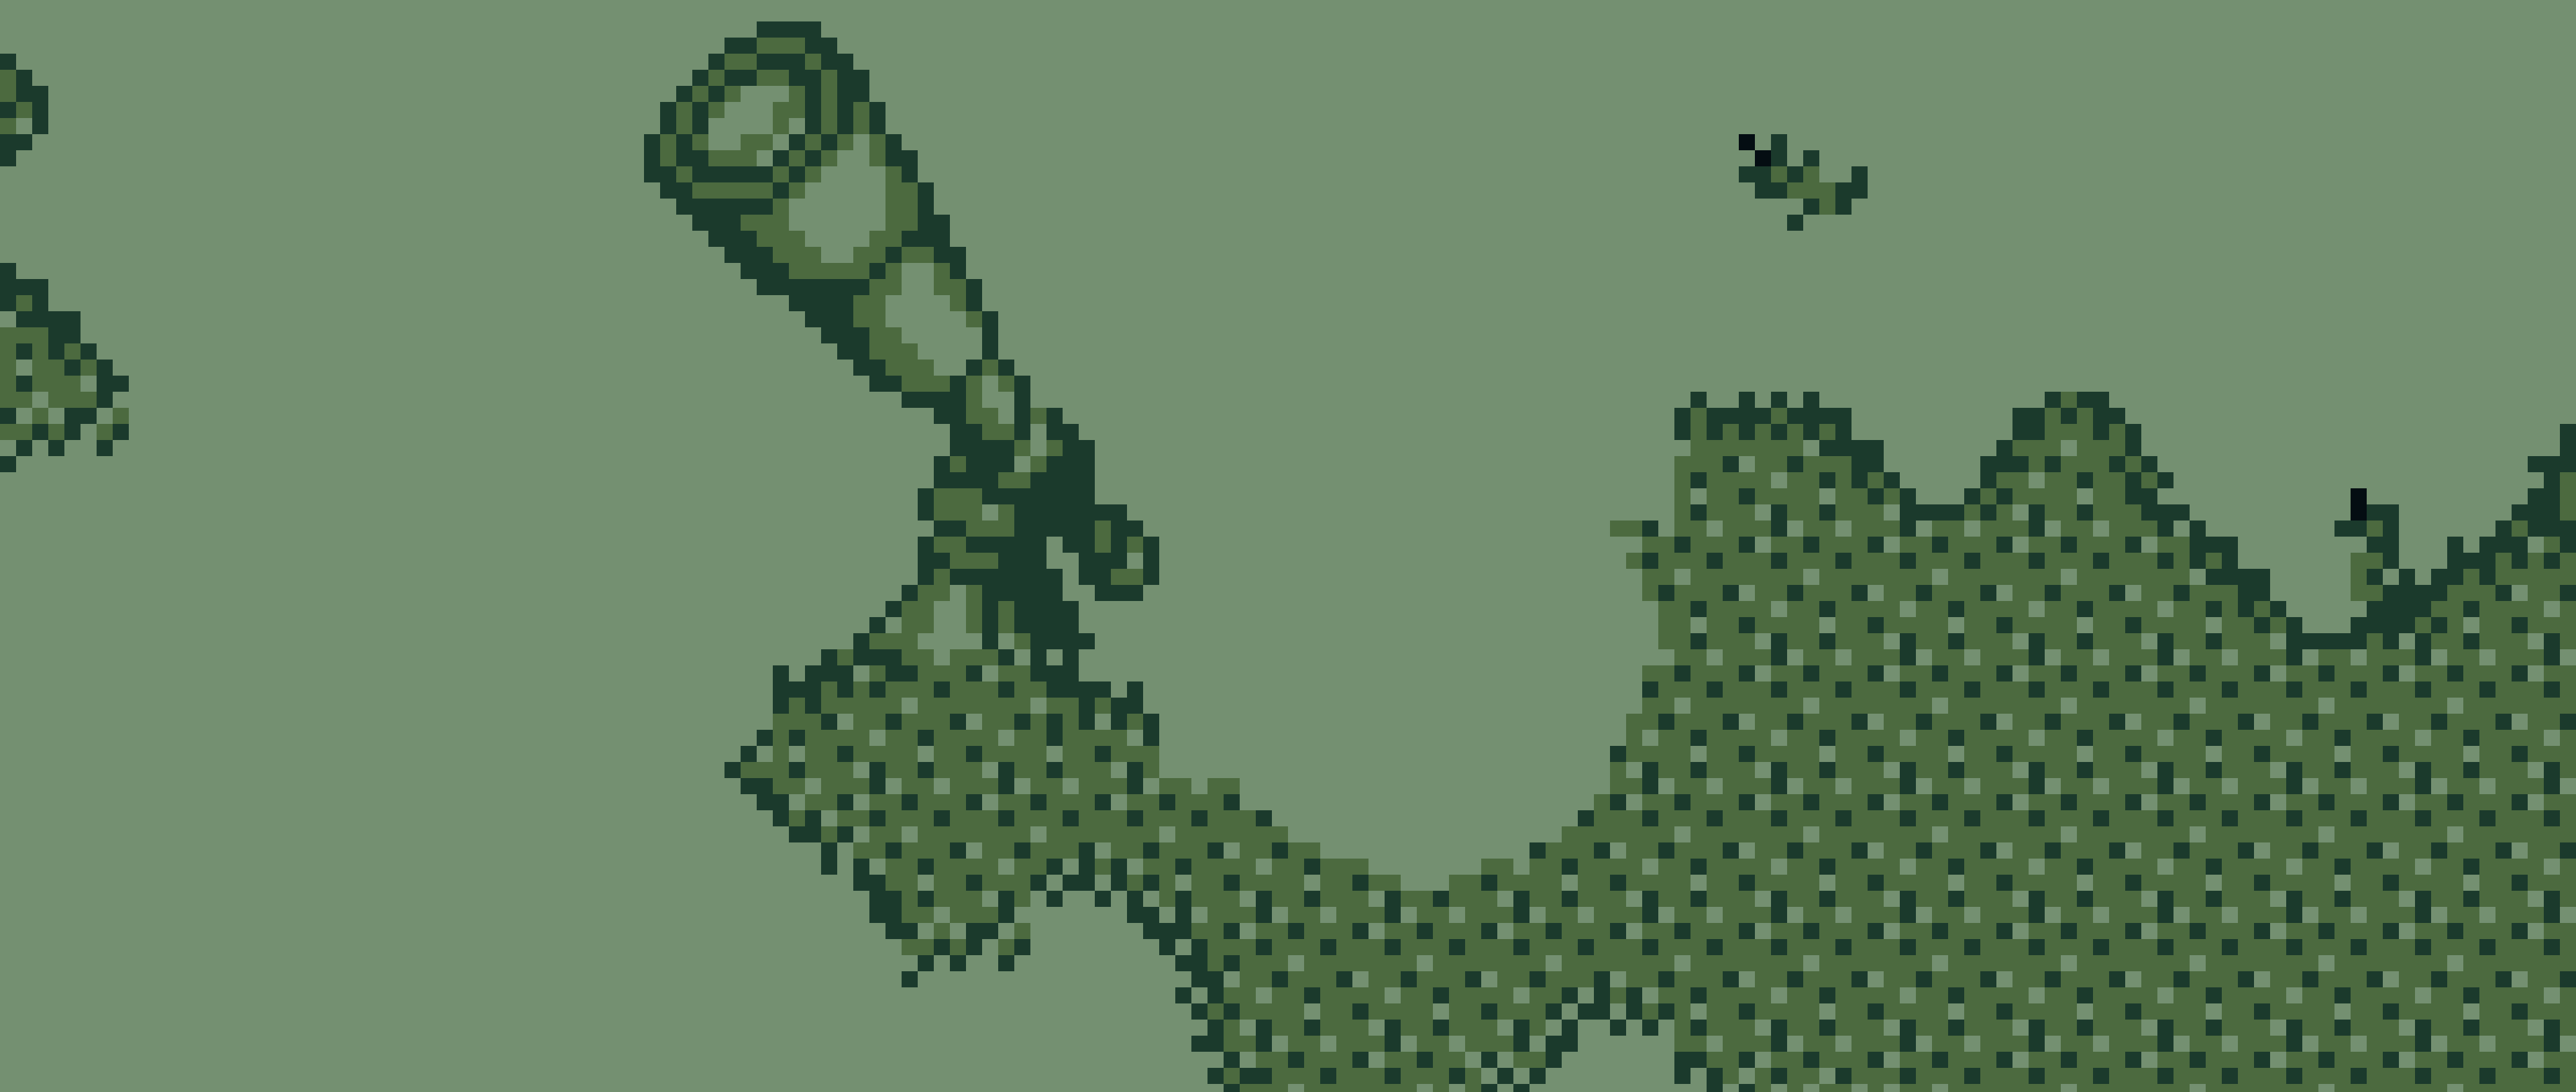 Worms (Game Boy)